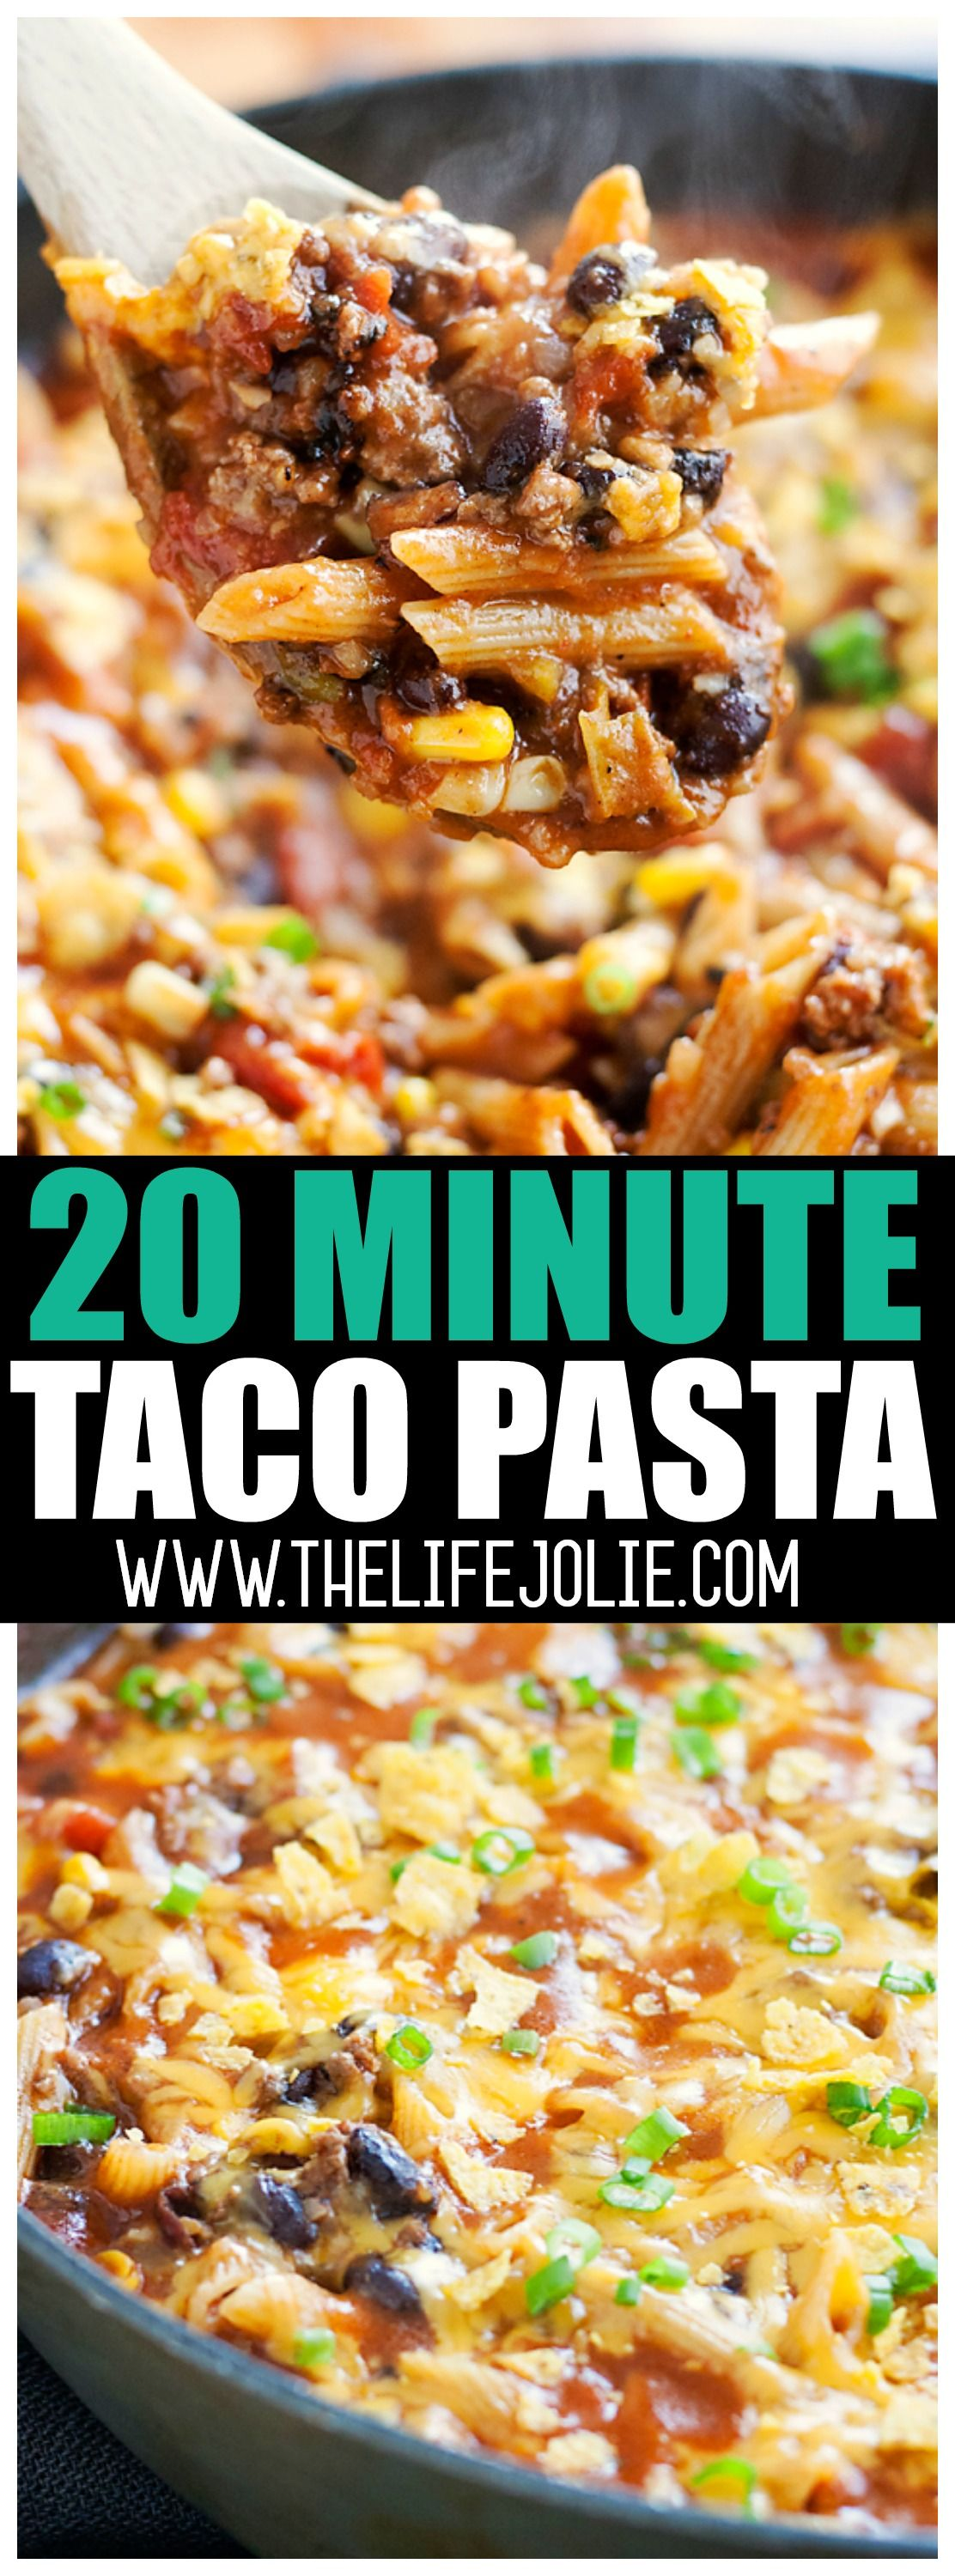 Taco Pasta  20 Minutes To An Easy Fulfilling Dinner